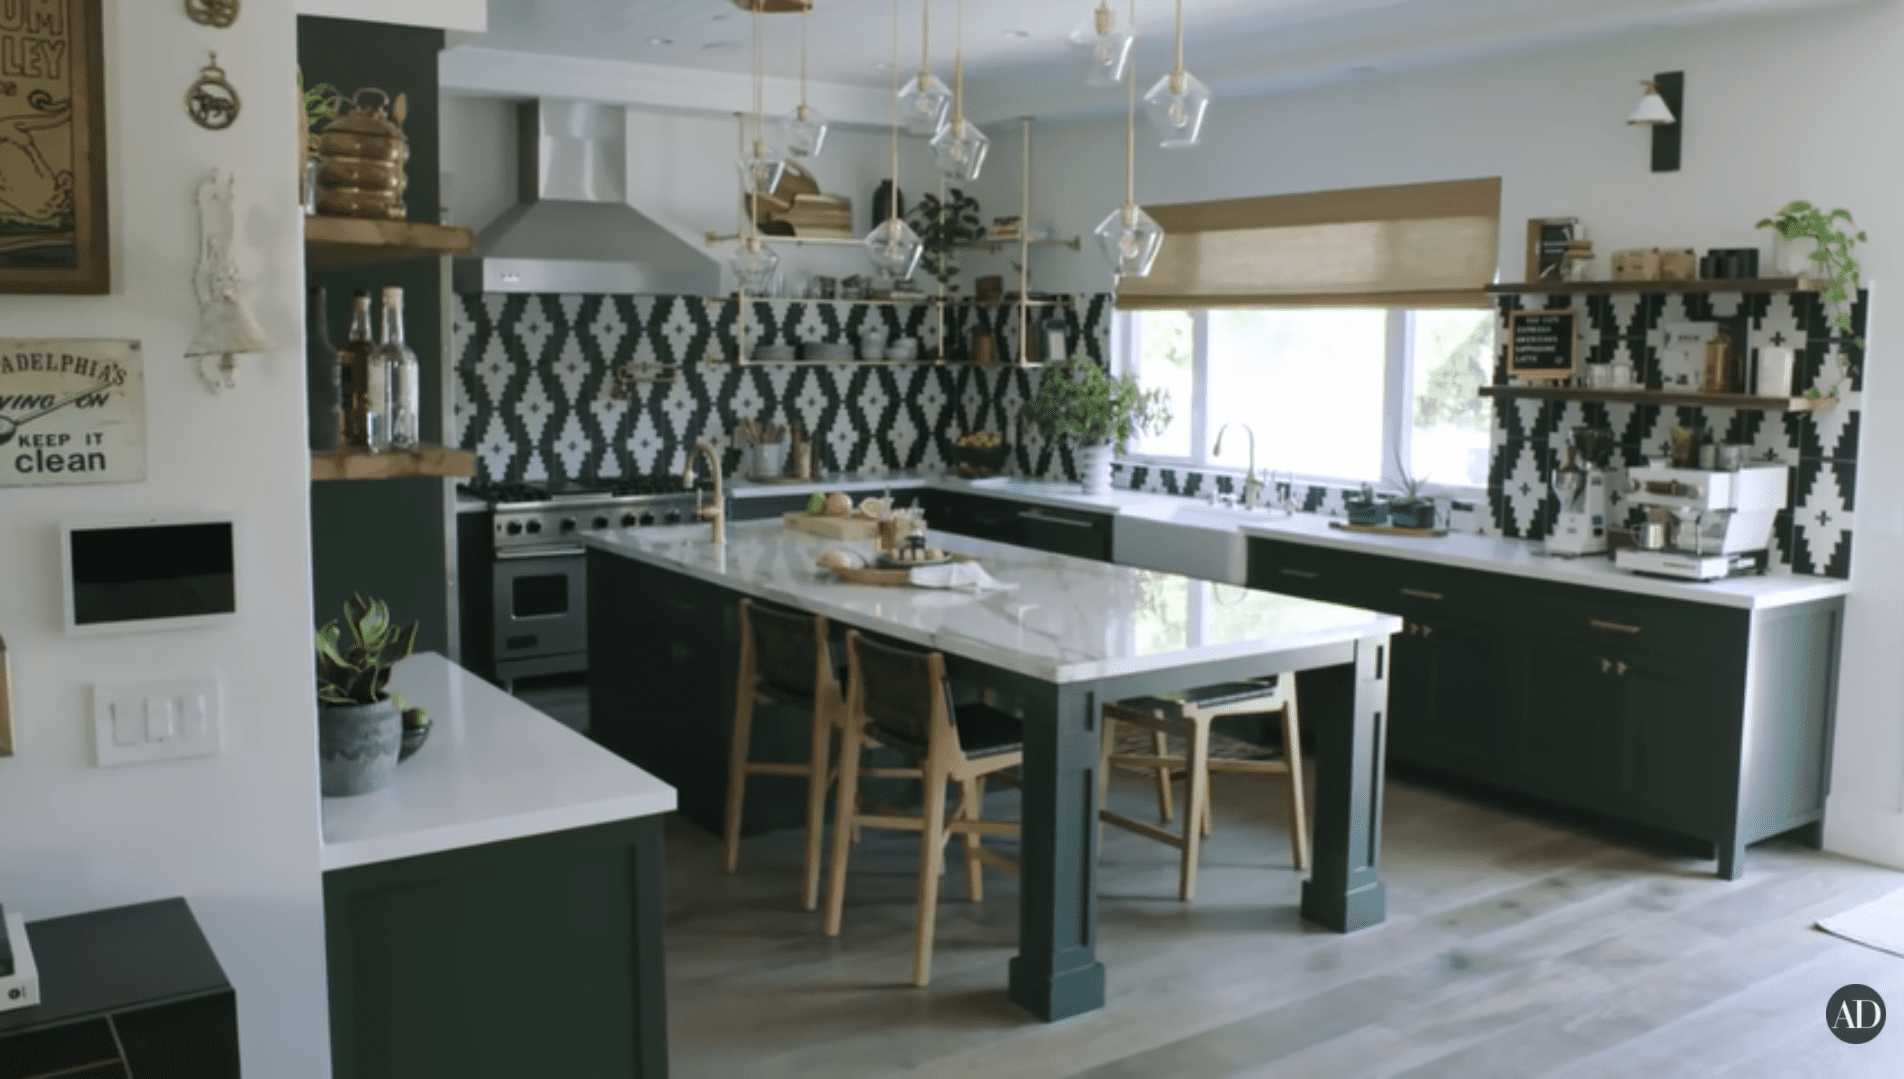 Daveed Diggs & Emmy Raver-Lampman's kitchen.   Source: Youtube/Architectural Digest